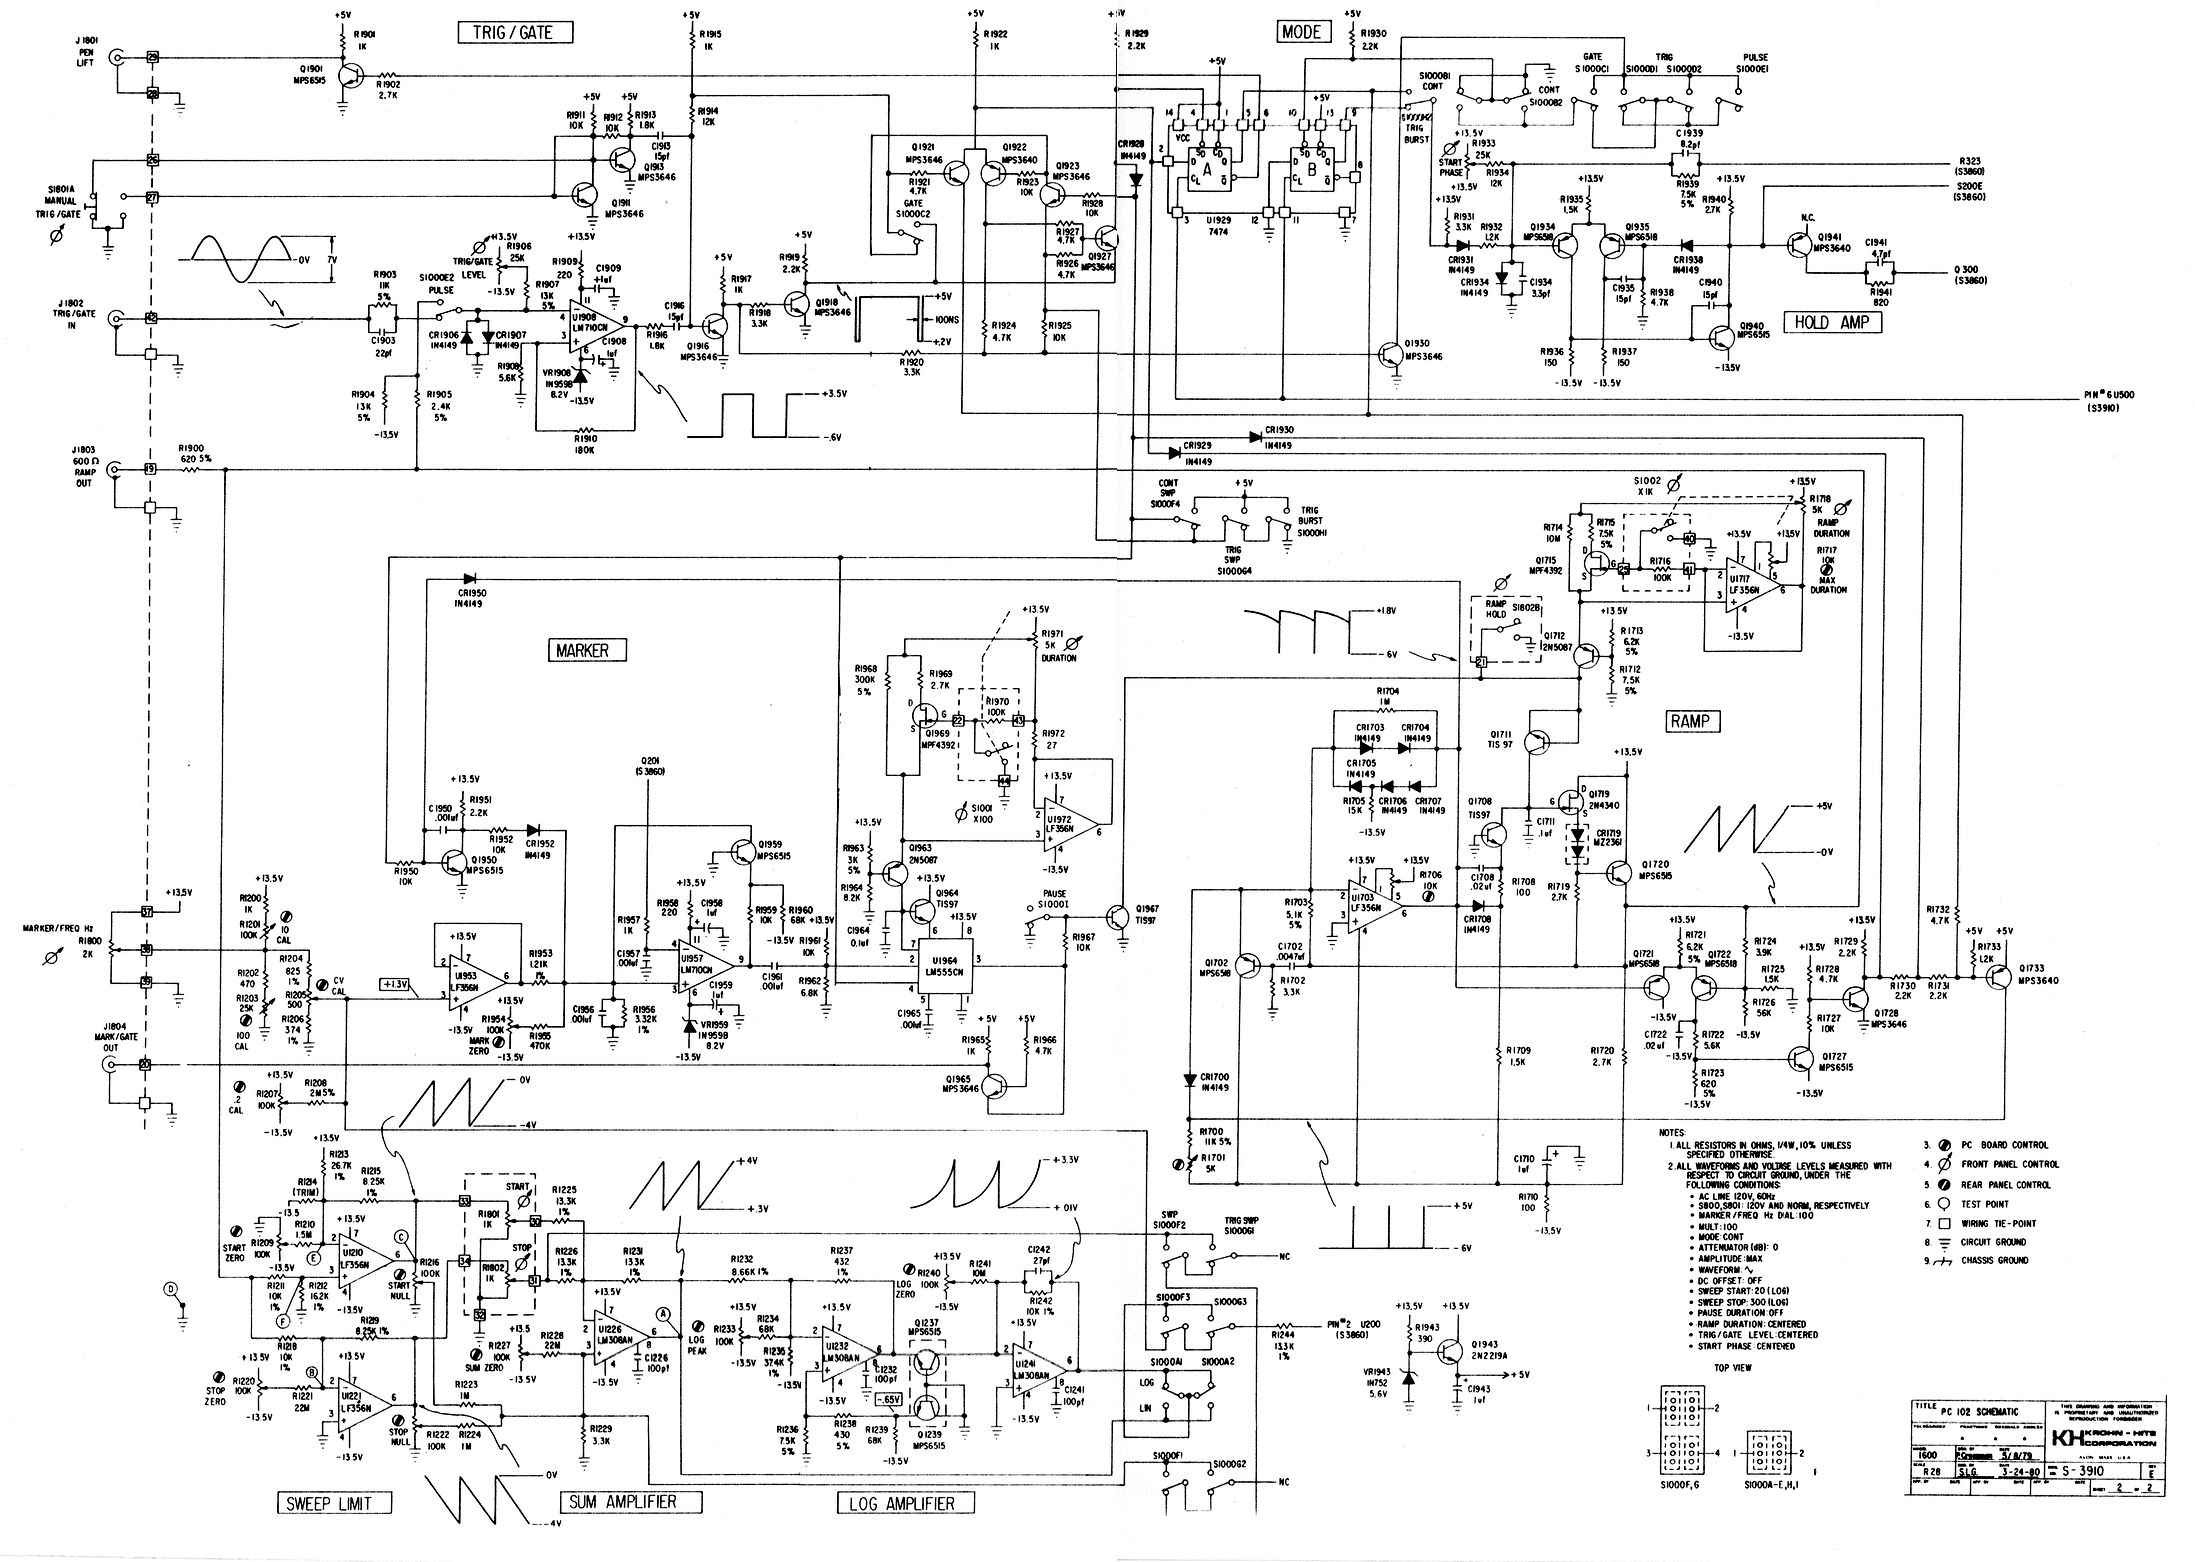 Function Signal And Sweep Generator Schematics Pro Audio Design Forum Wiring Diagrams Krohn Hite 1600 Schematic Sheet 2 Https Images Heet